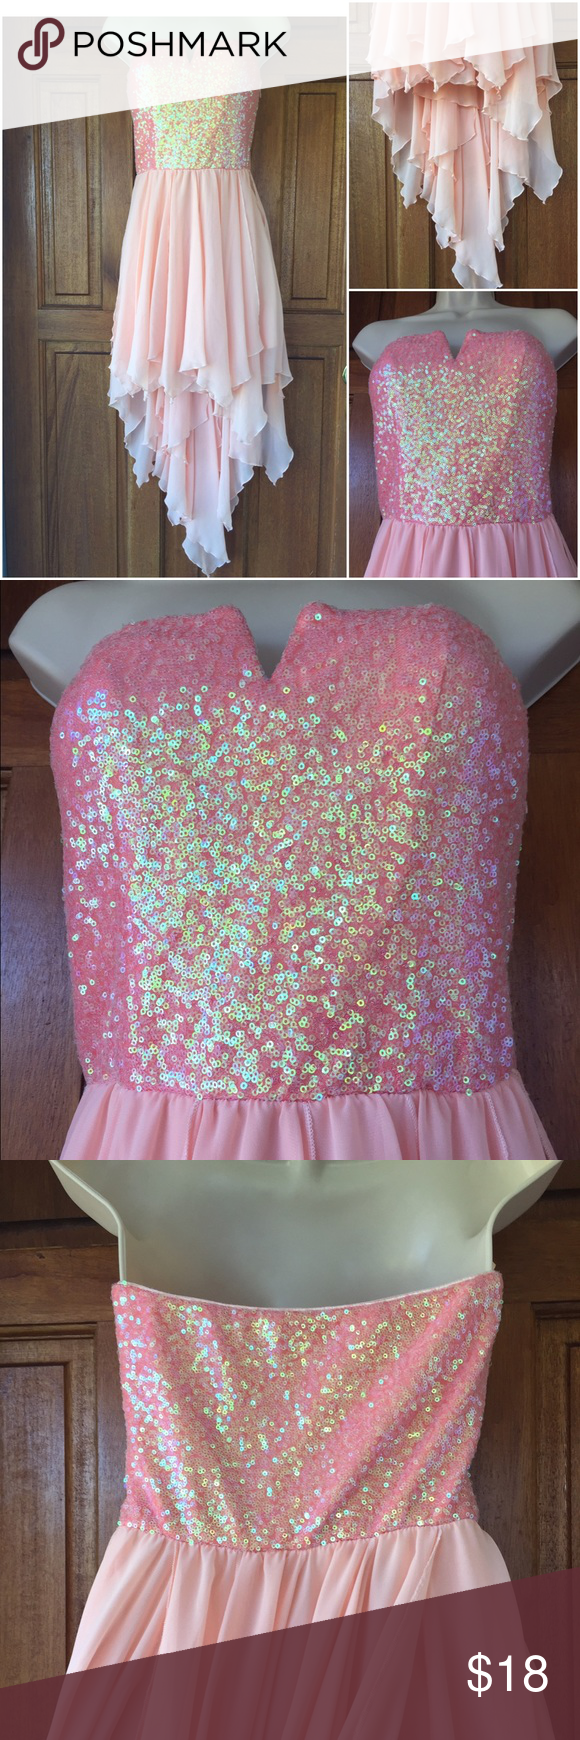 As u wish formal dress  Sz 4 / 5 Party 🎉 dress very pretty pink completely sequins, multi layered skirt. As U Wish Dresses High Low